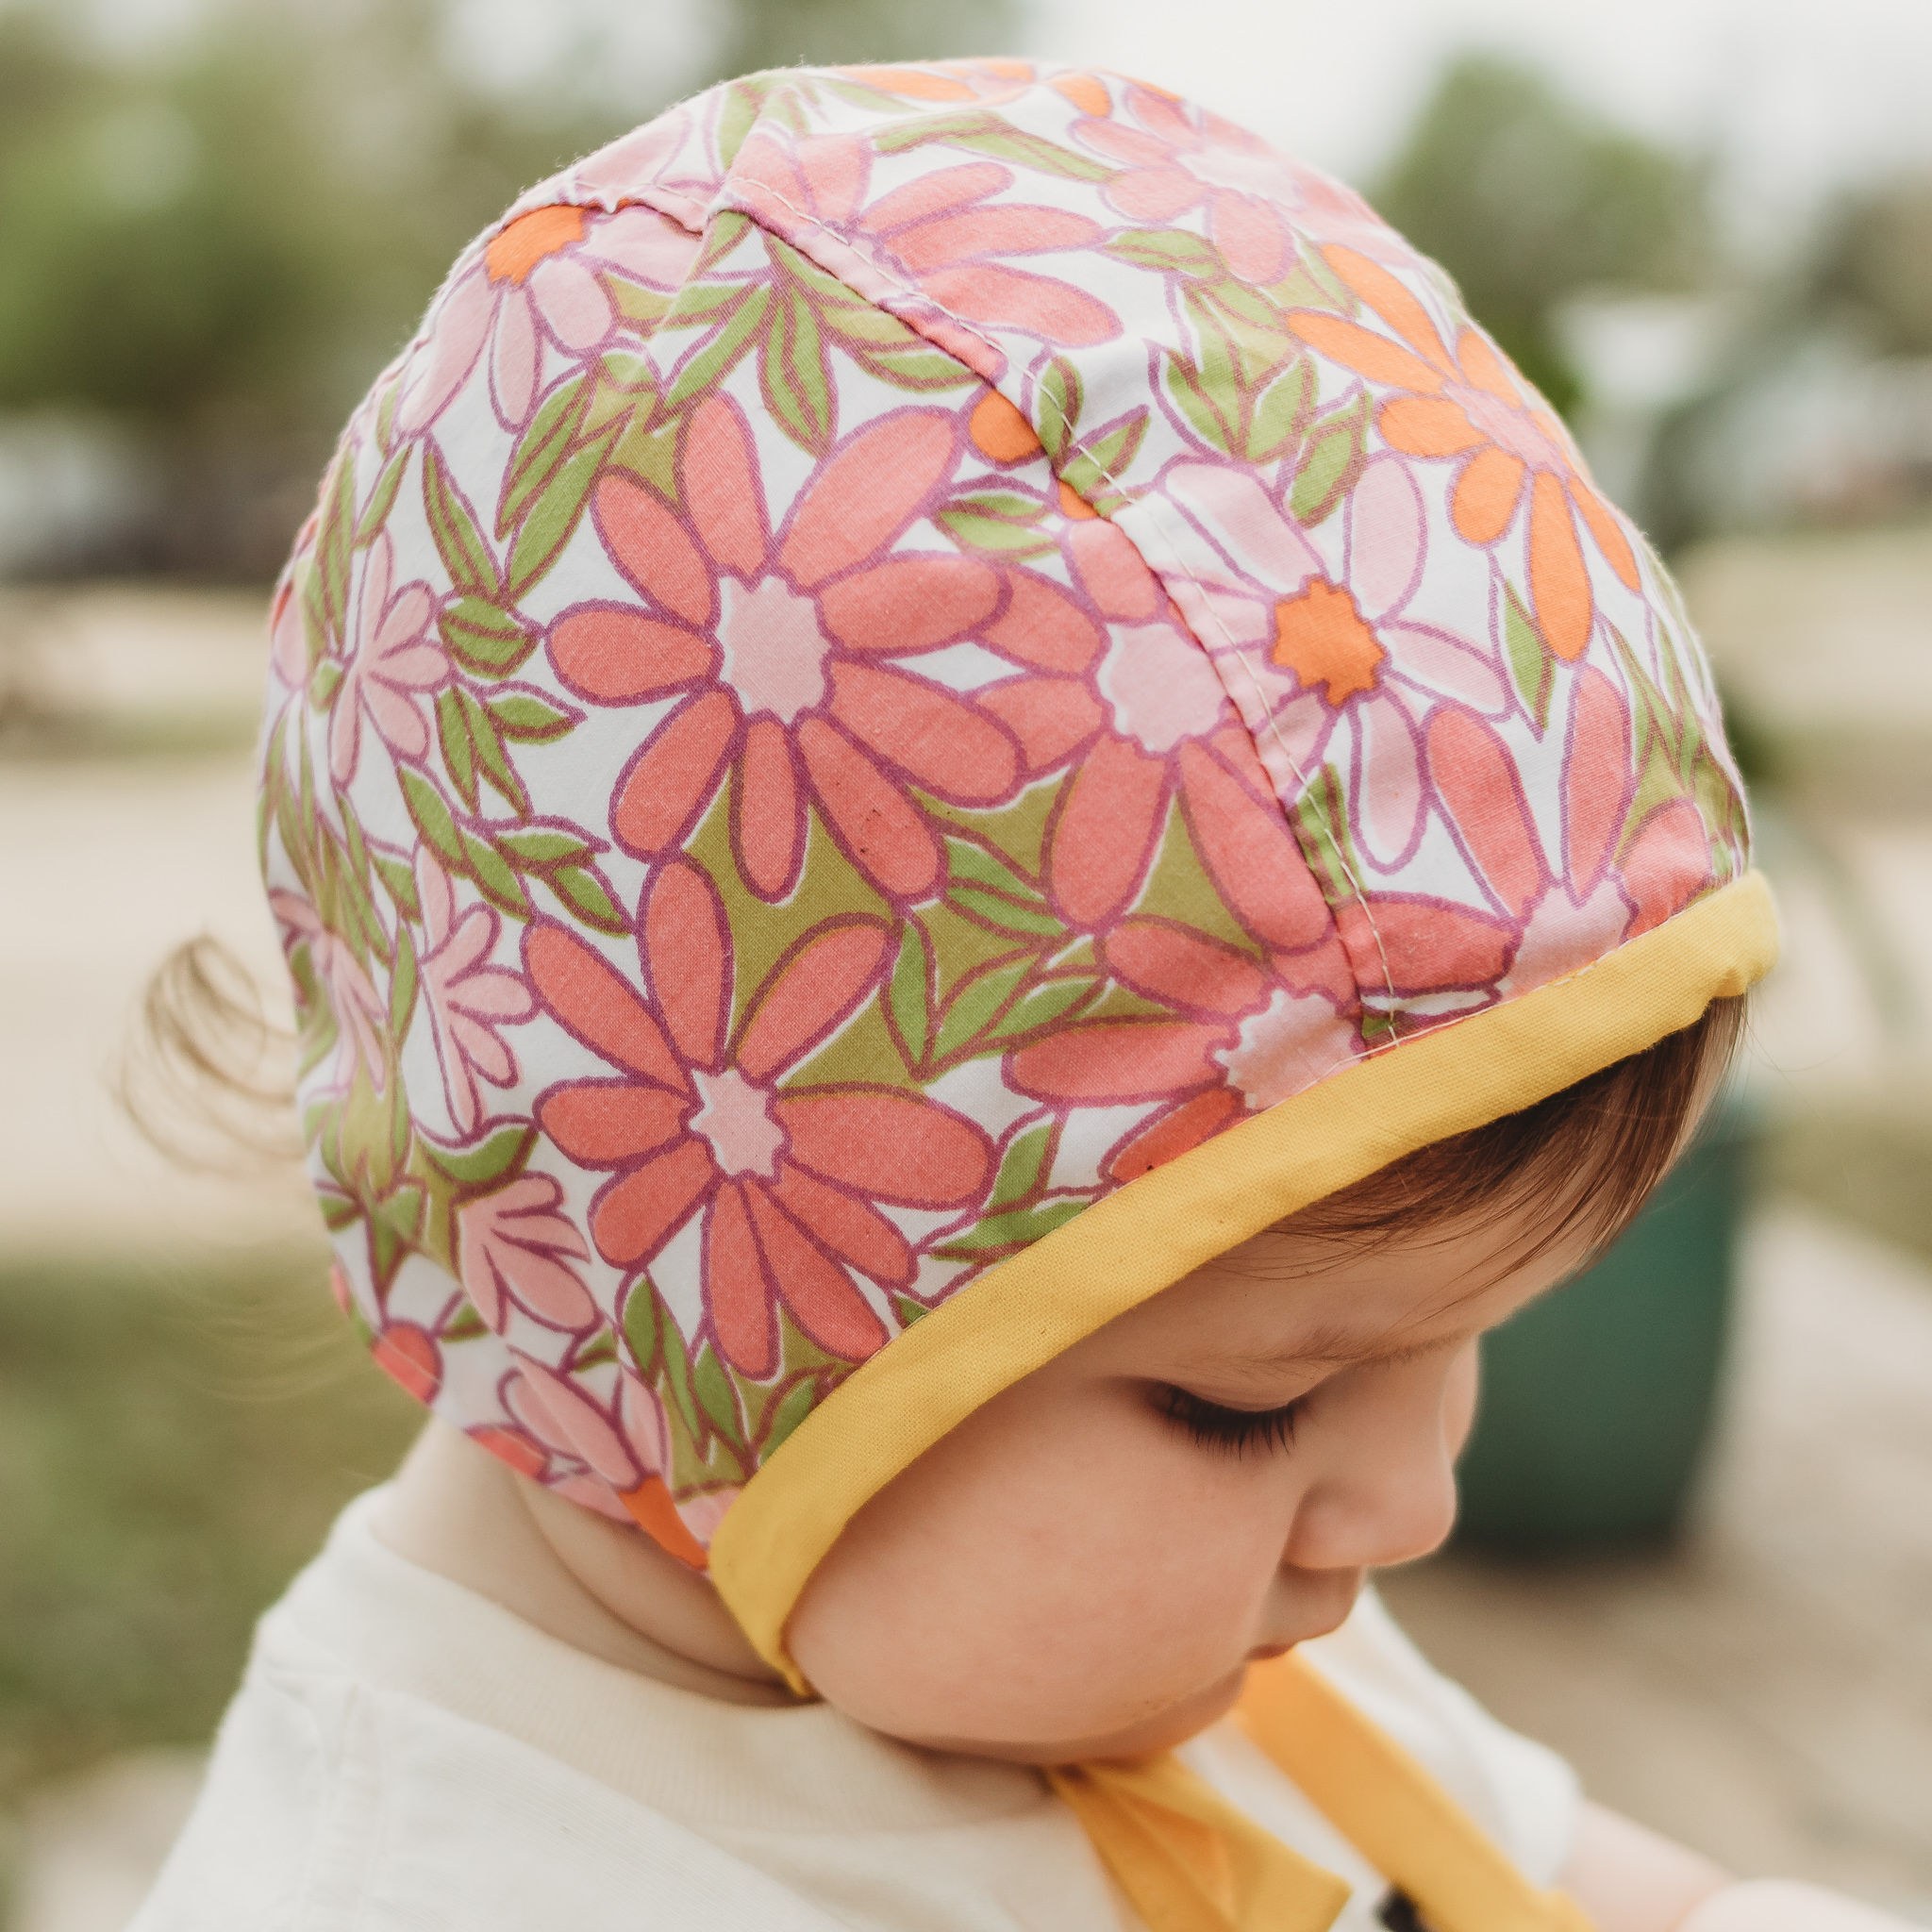 Baby bonnet for spring with retro pink flower fabric by Blue Corduroy